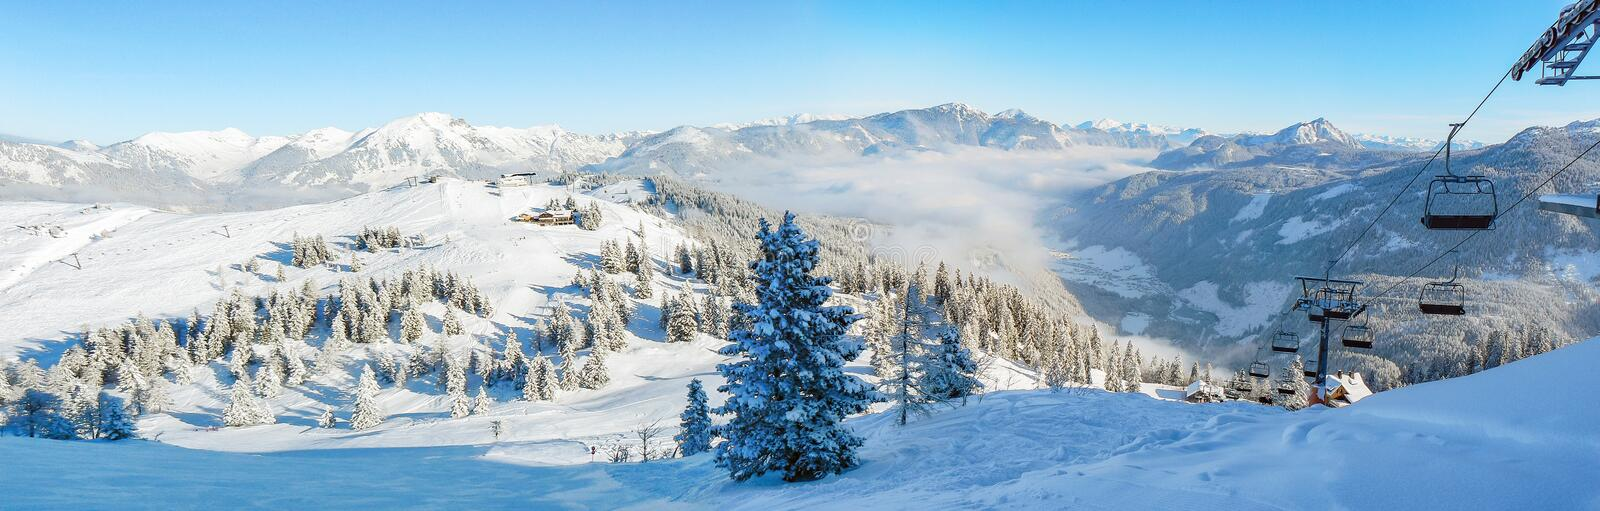 Alpine ski slope mountain winter panorama with ski lift royalty free stock images